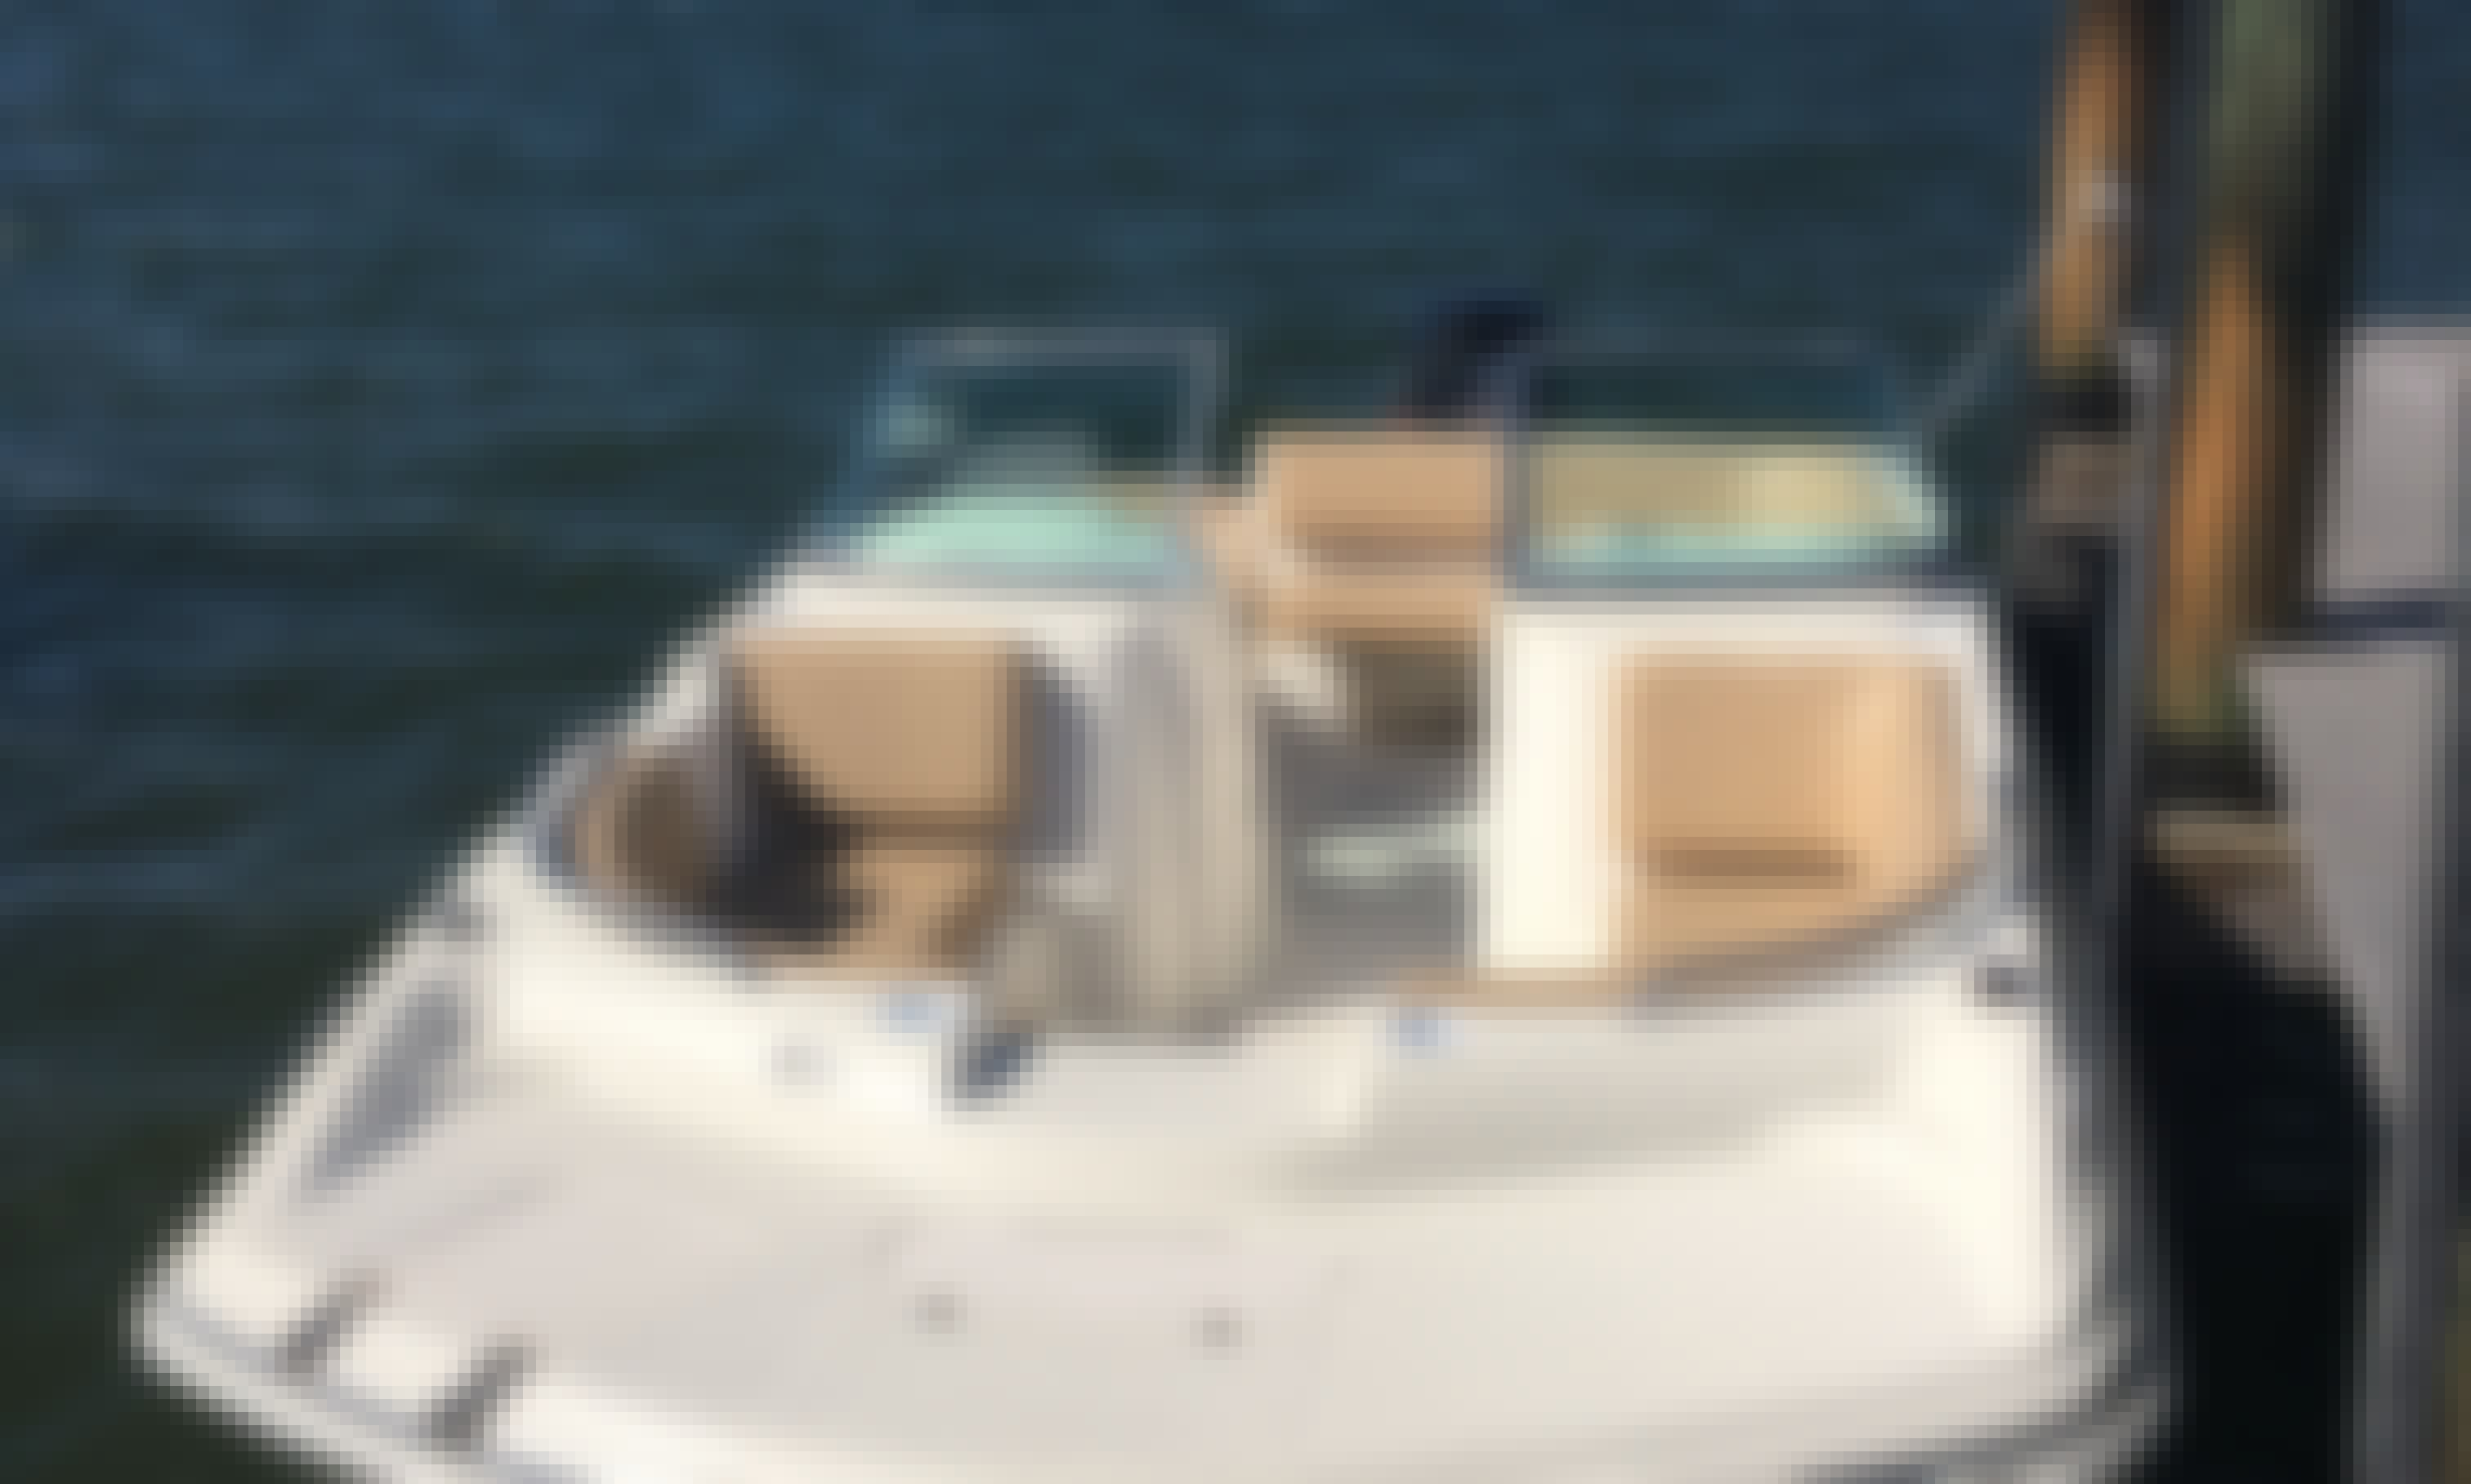 Deck Boat Rental in Sarasota, Florida